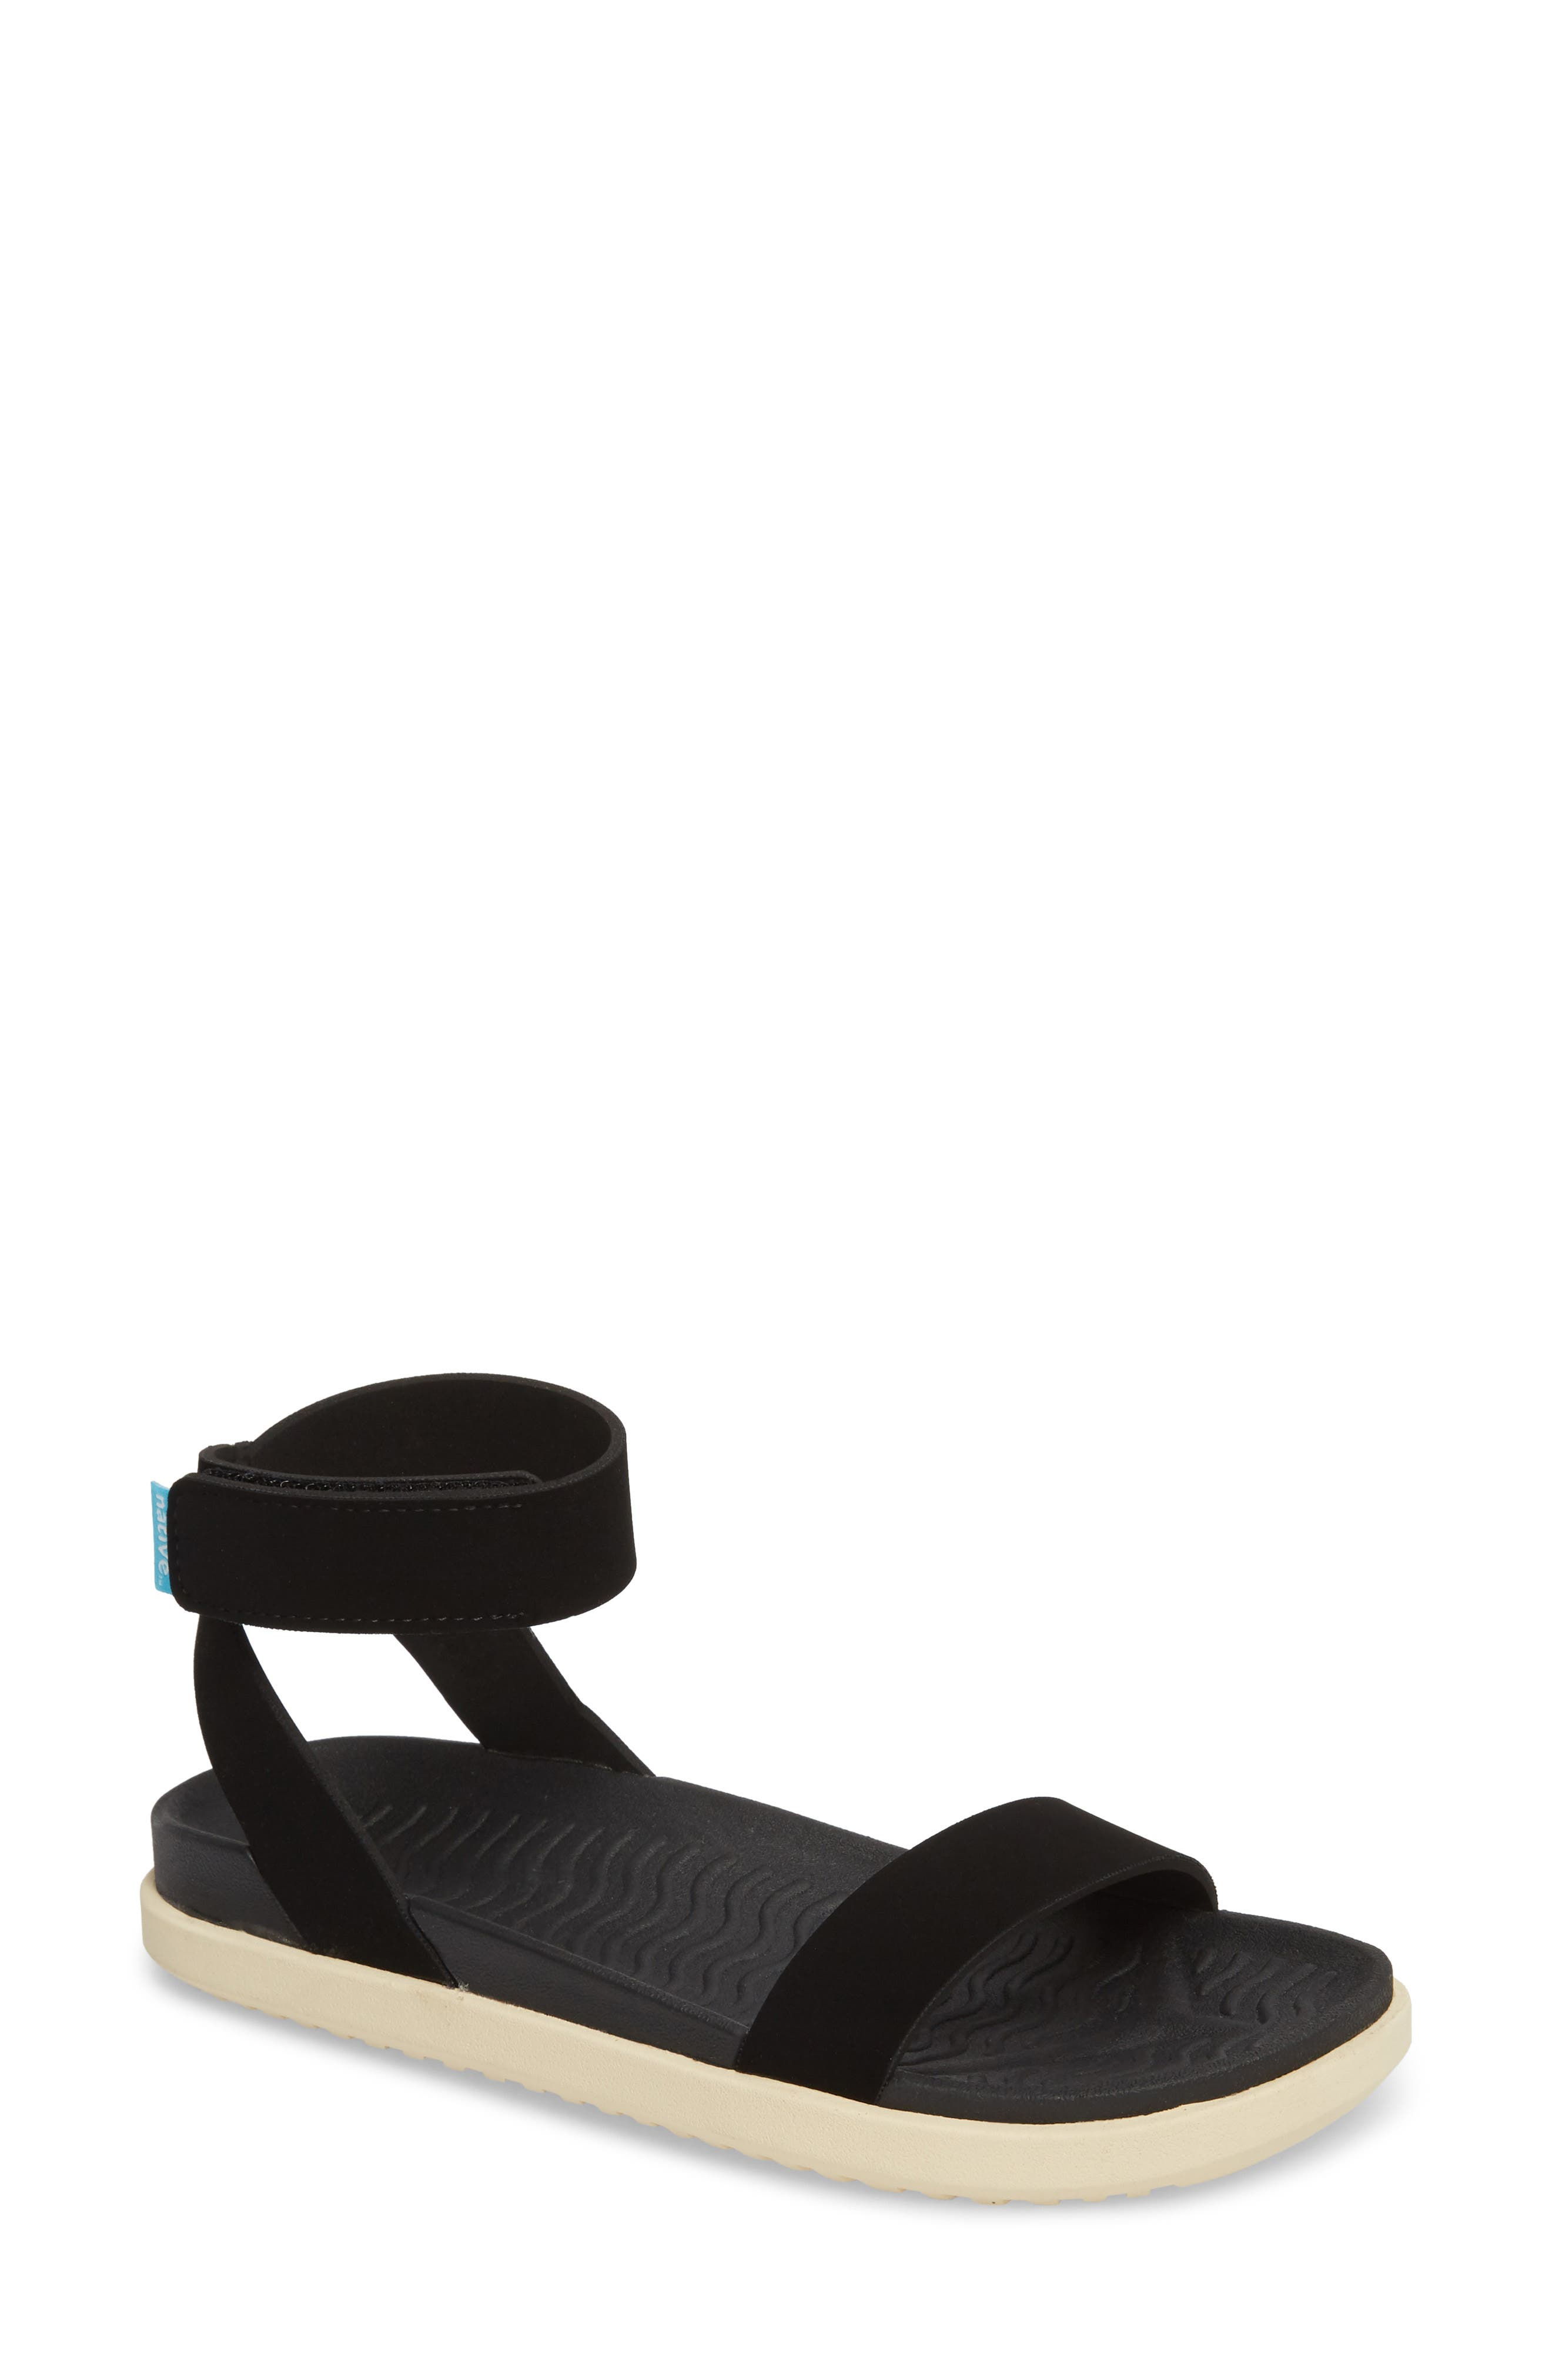 Native Shoes Juliet Sandal, Black